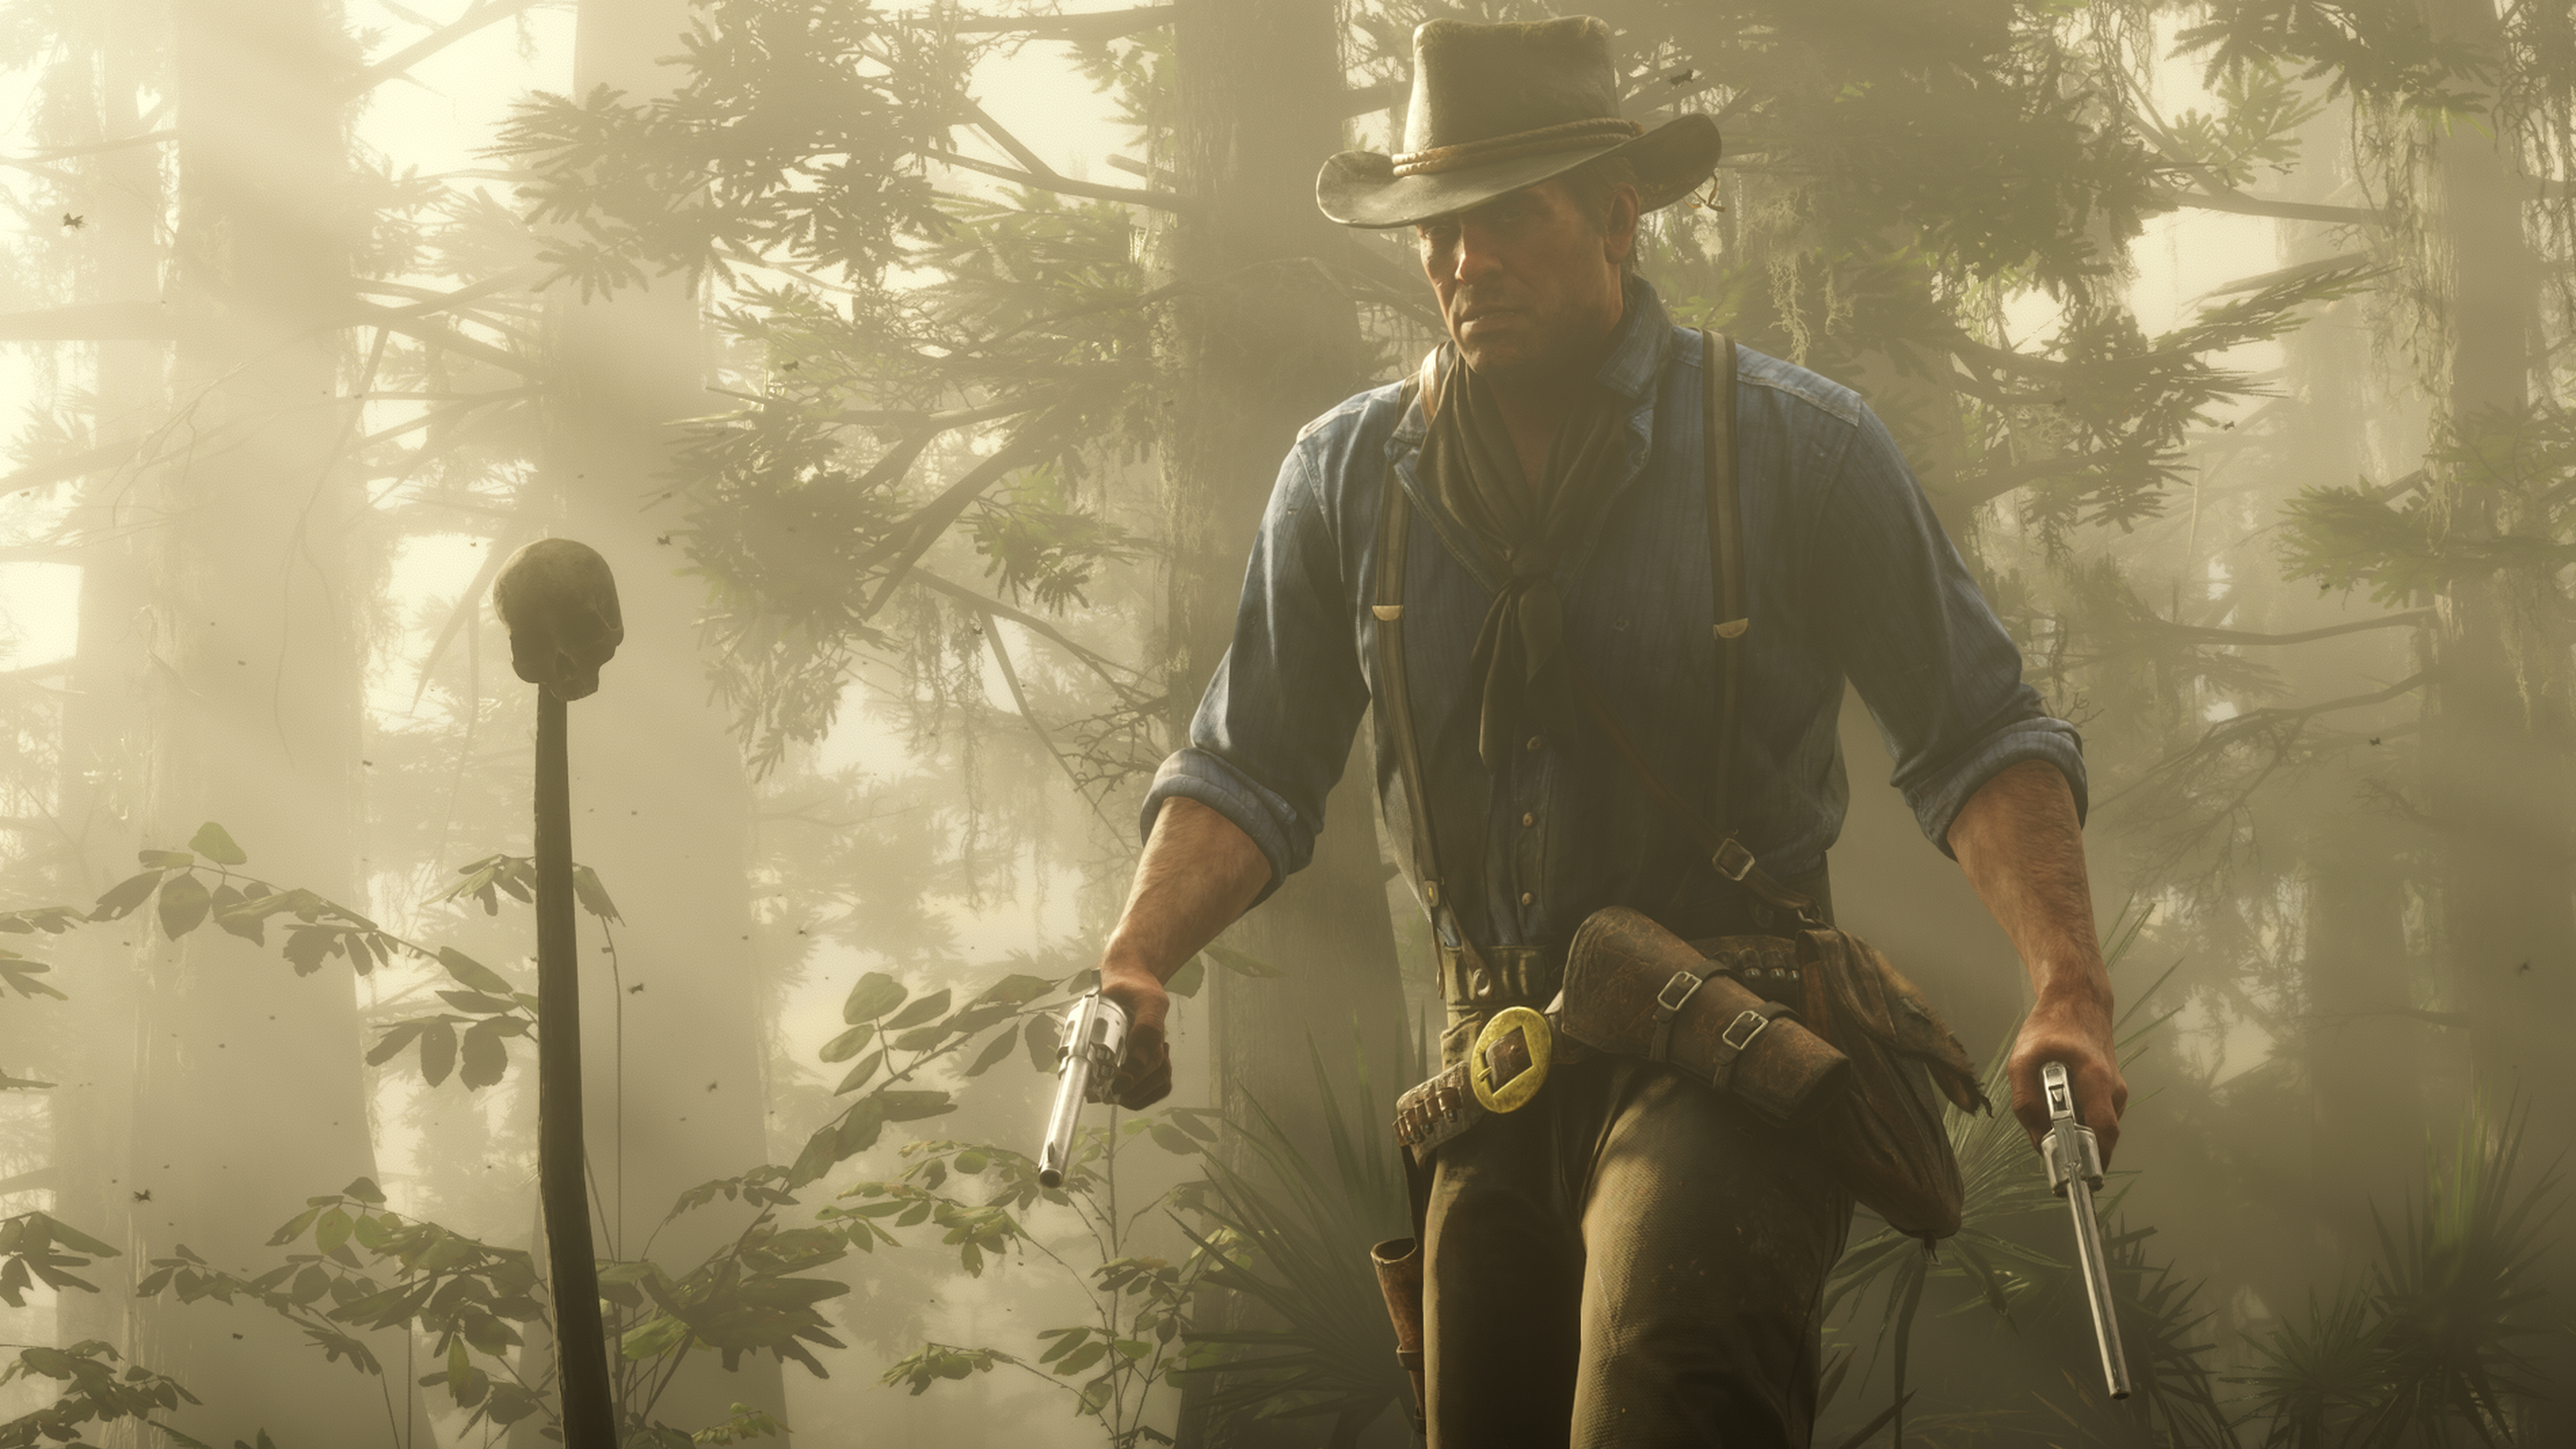 Red Dead Redemption 2 on PC: will we see a PC release?